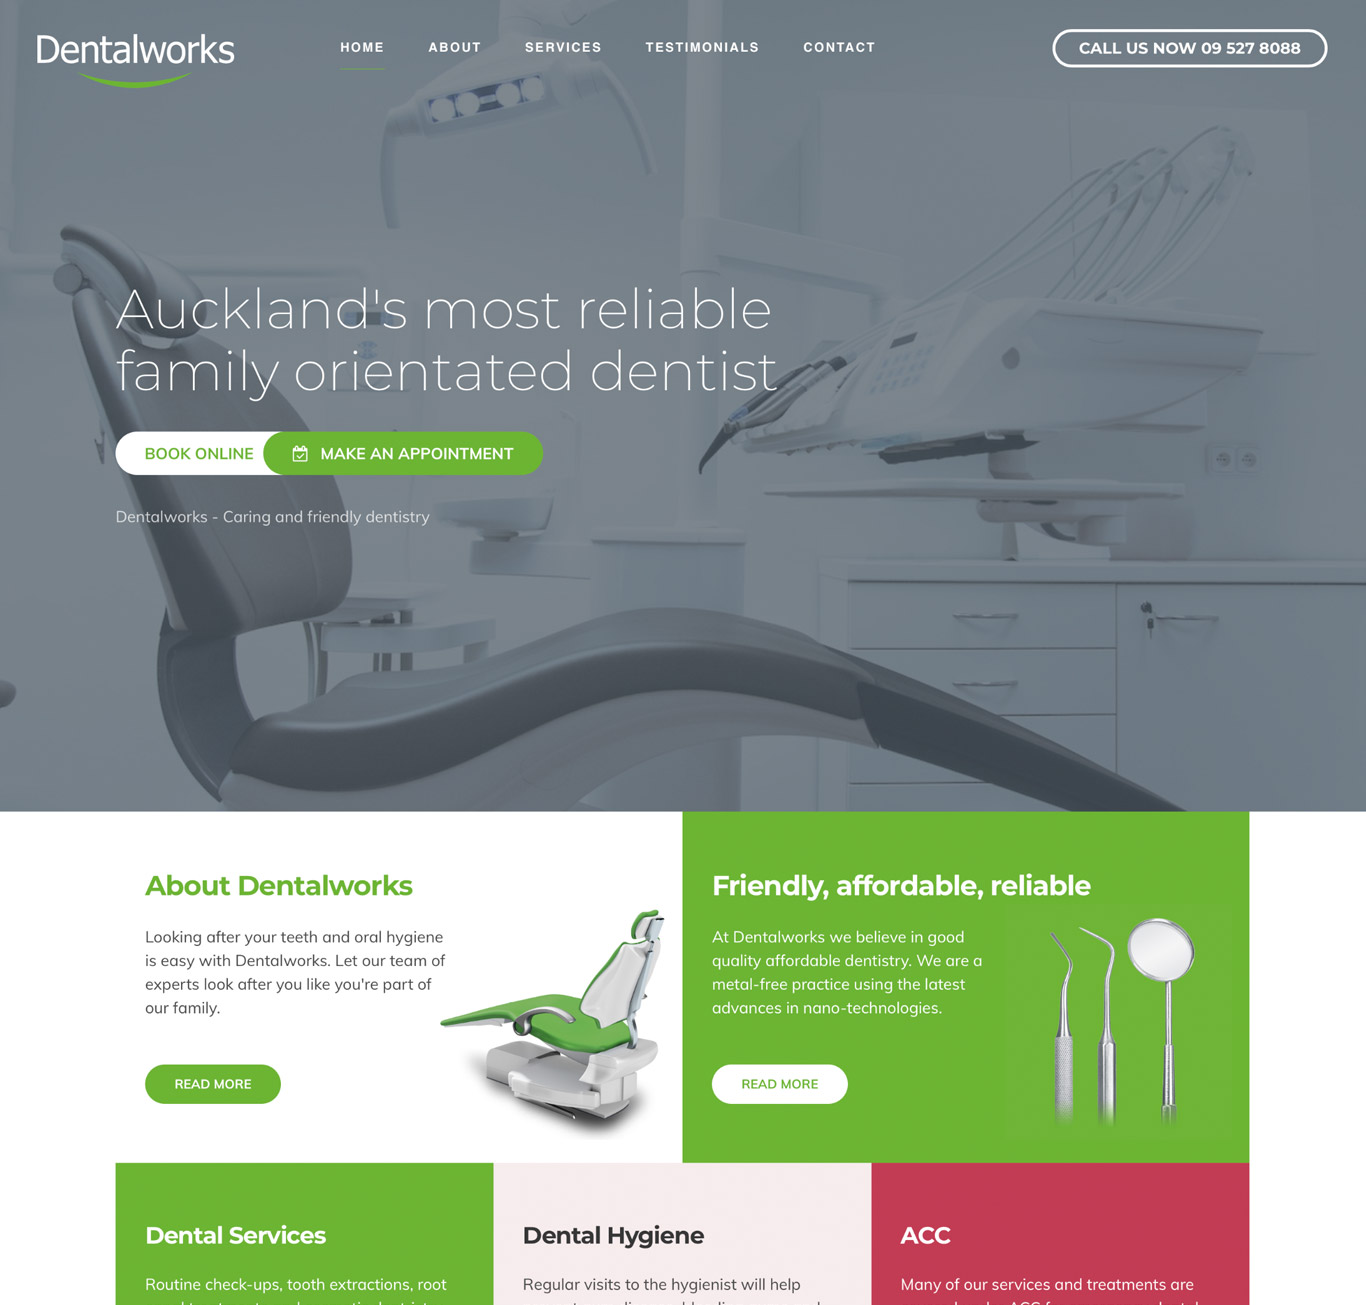 Dentalworks on desktop